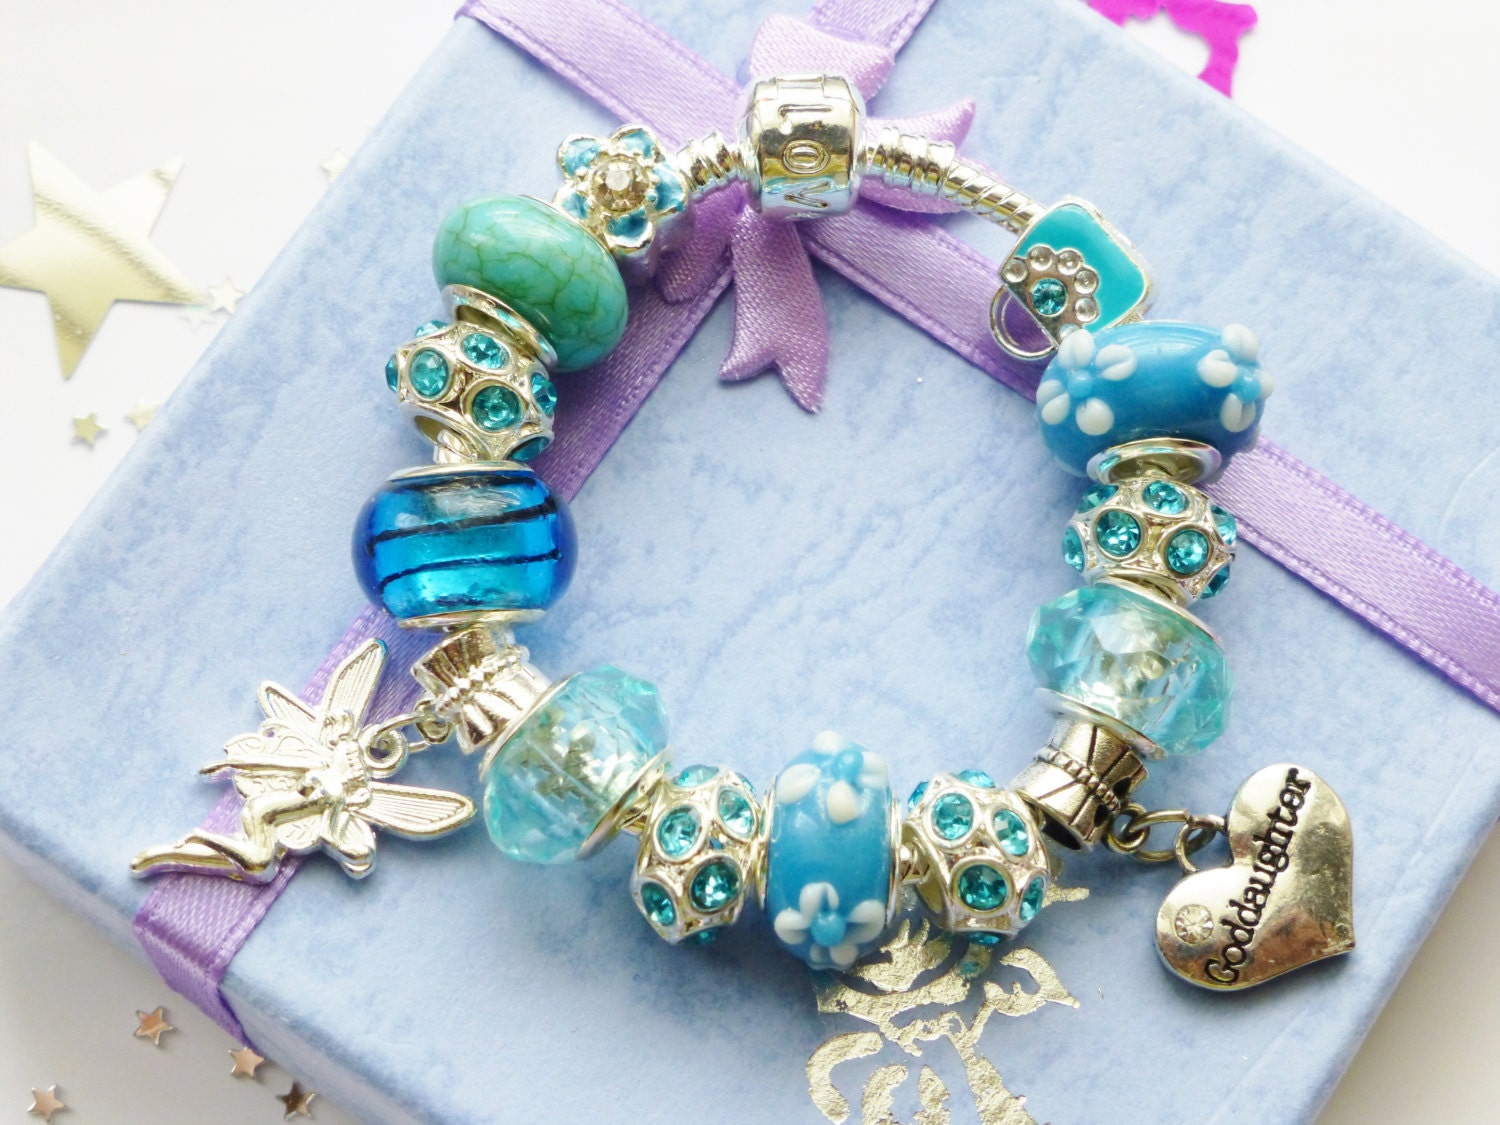 Godddaughter charm bracelet blue pink green lilacchoice with fairy  all charms choose color  size